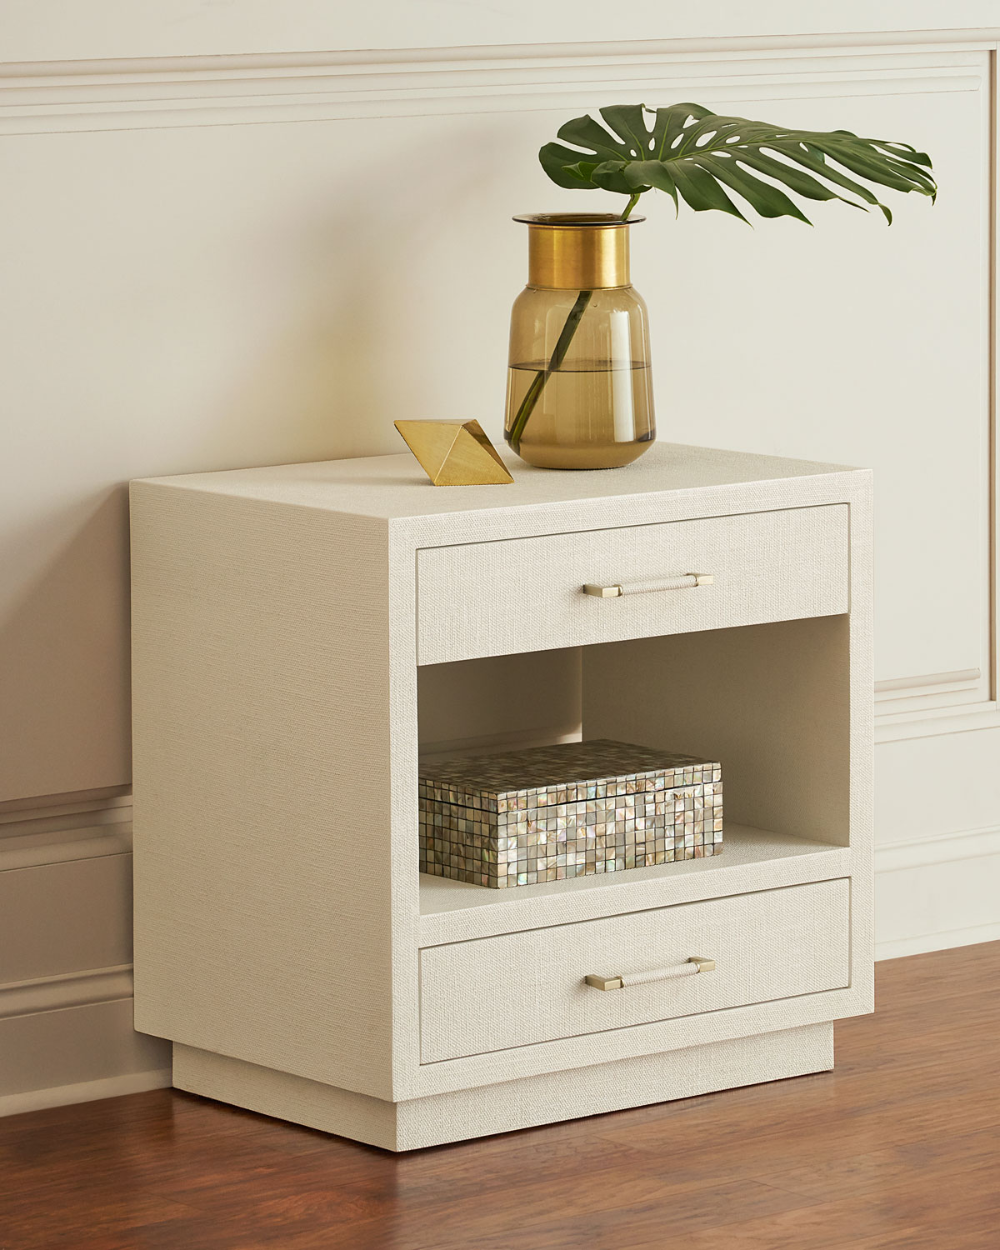 Interlude Home Robyn Bedside Chest, White in 2020